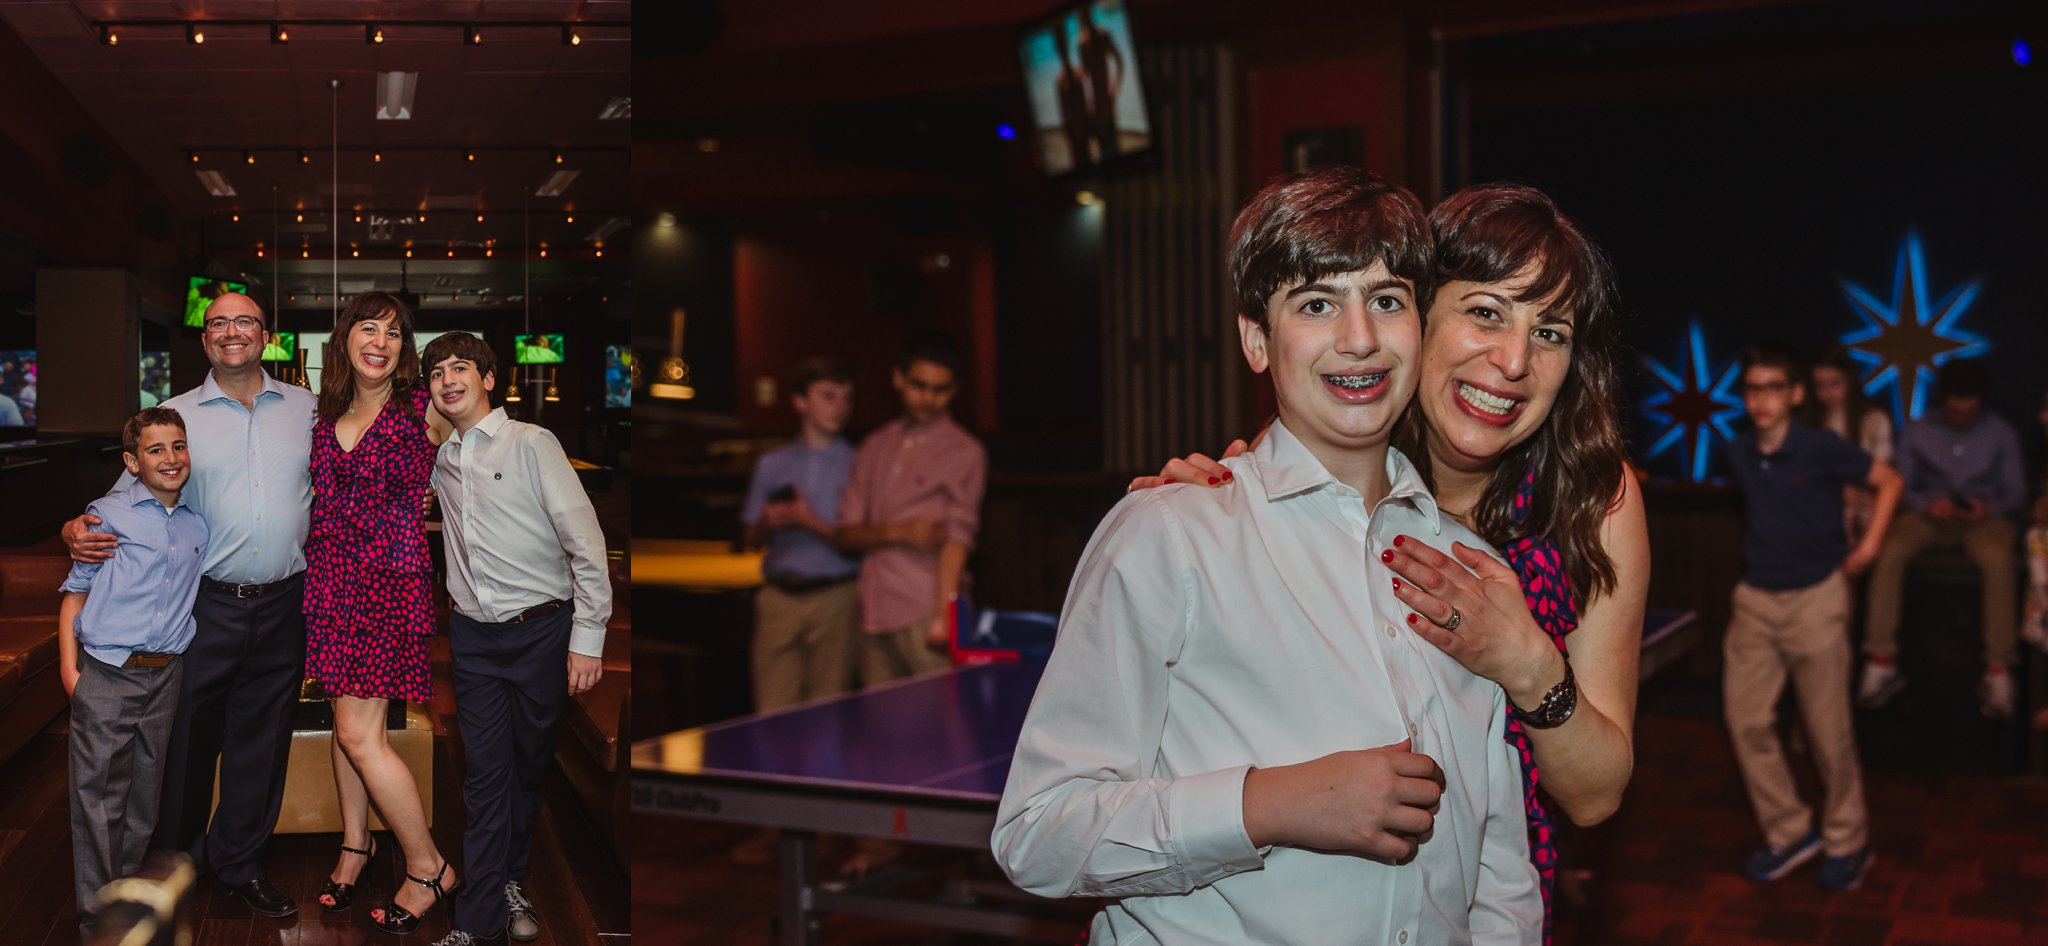 The family smile for Rose Trail Images at the mitzvah reception at Kings in Raleigh, North Carolina.